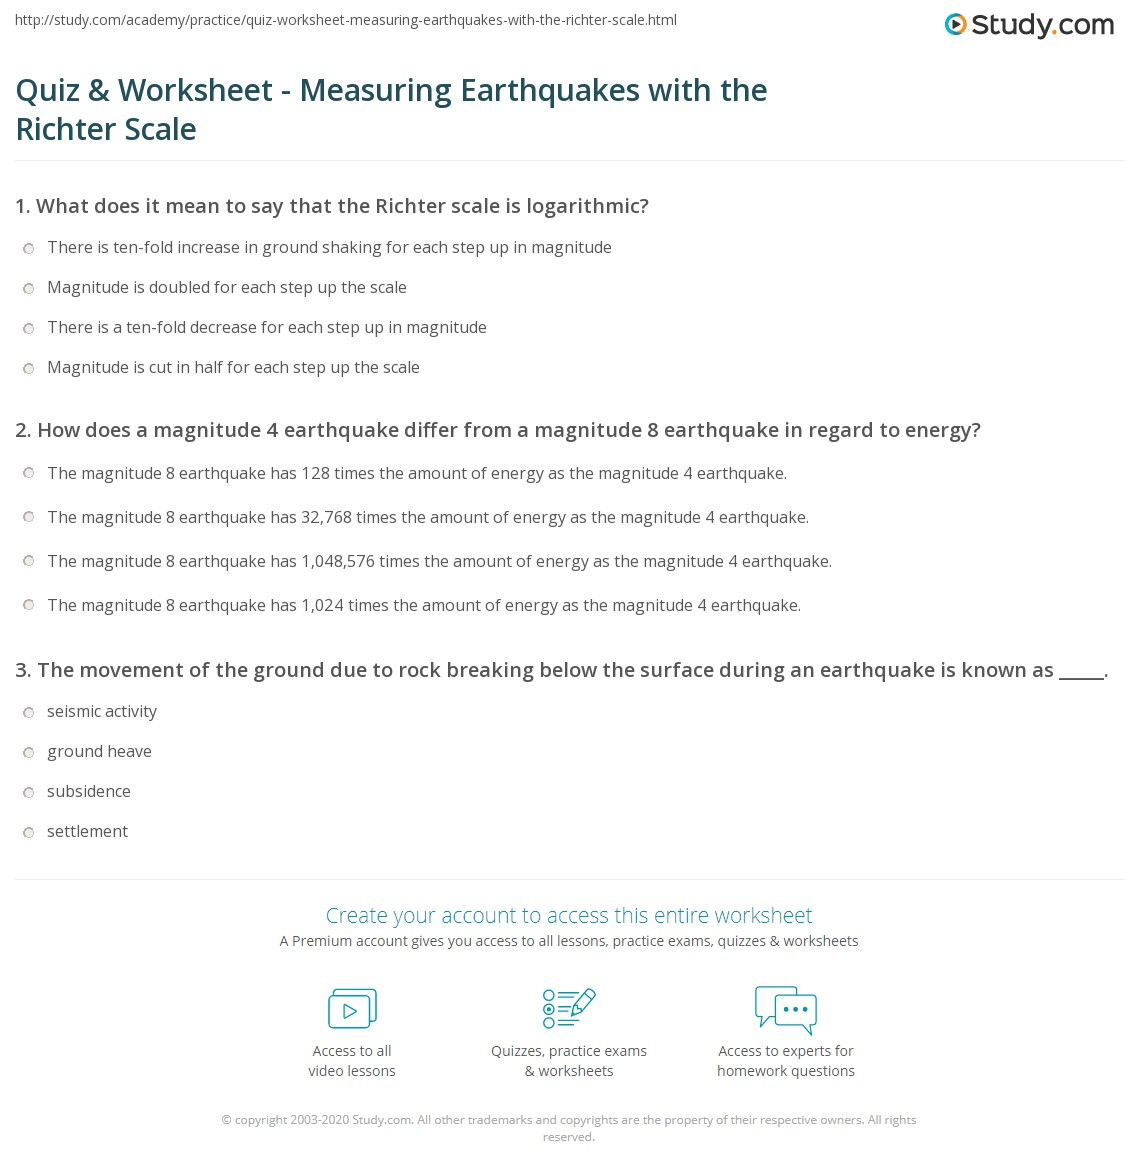 how does a magnitude 4 earthquake differ from a magnitude 8 earthquake in regard to energy